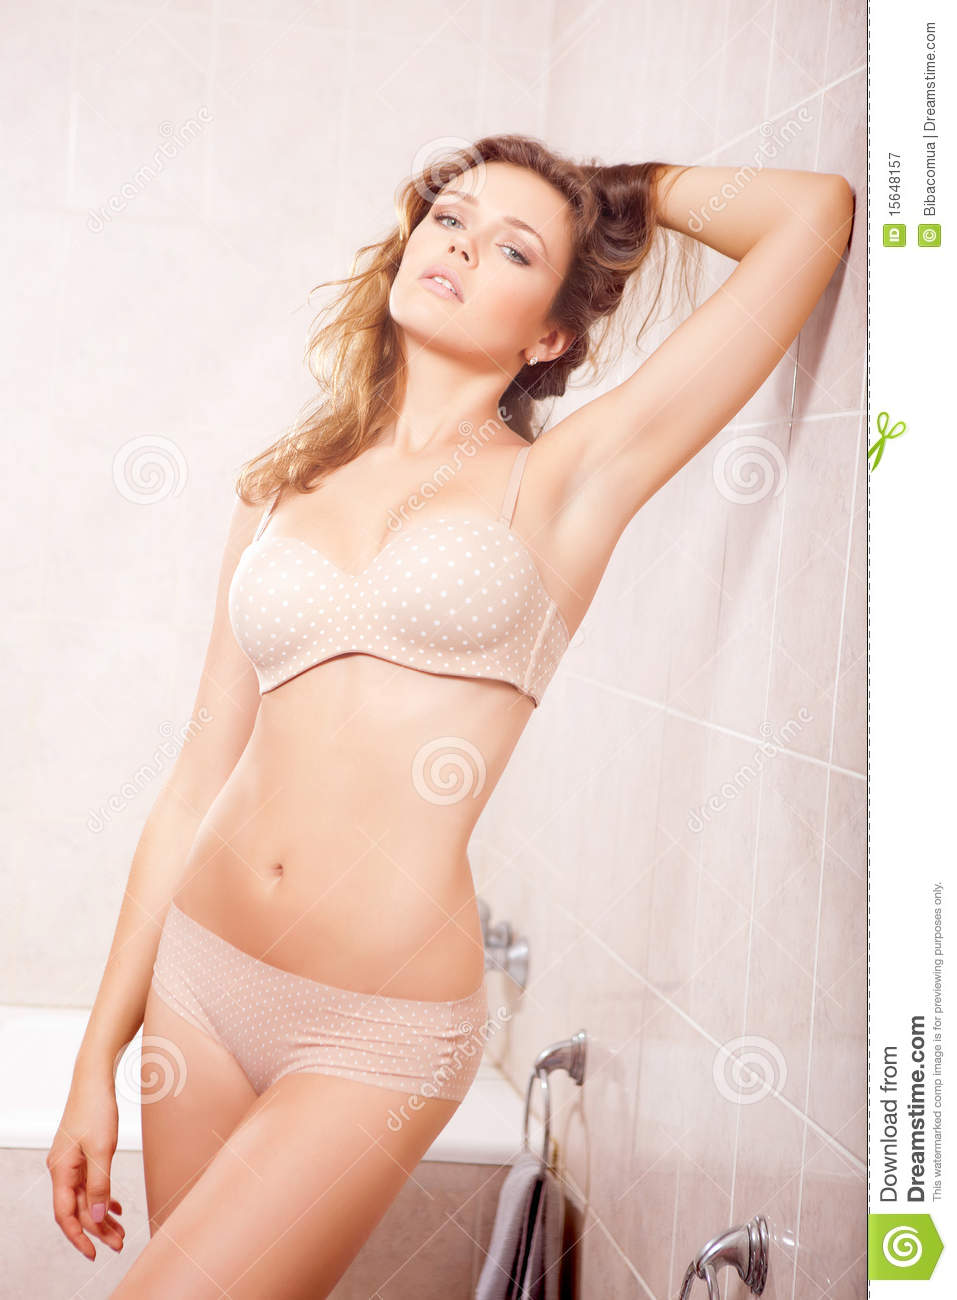 porn sexy women in the shower